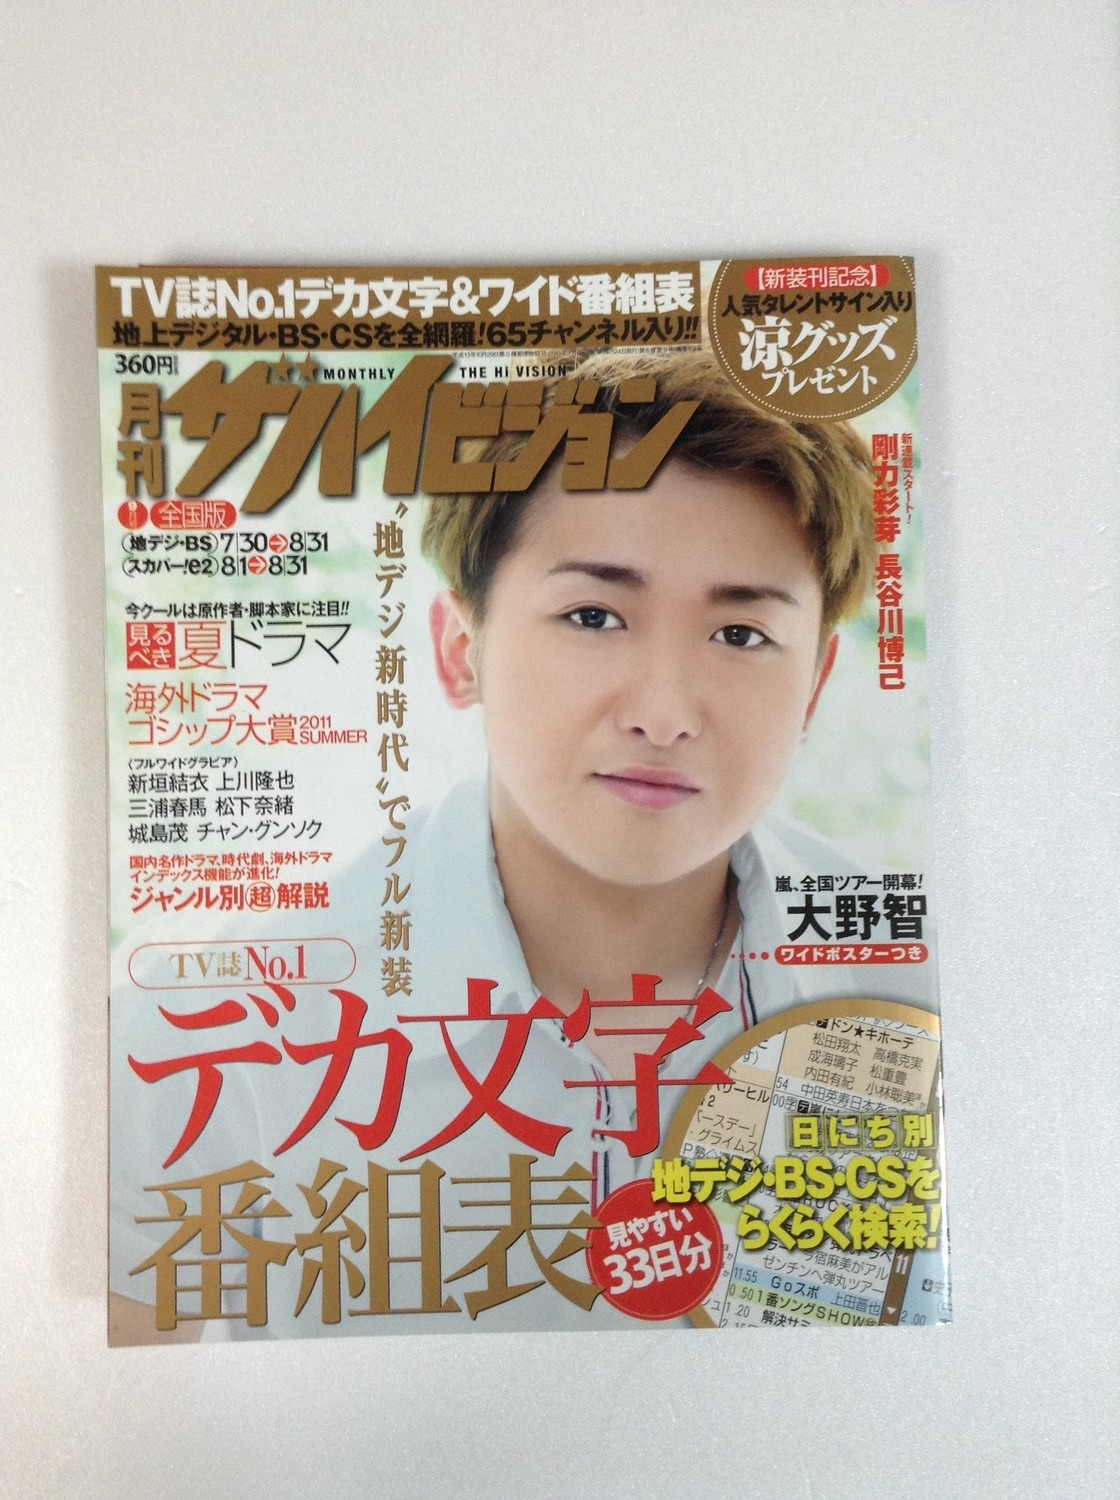 The Television Monthly Magazine August 2011 featuring Ohno Satoshi